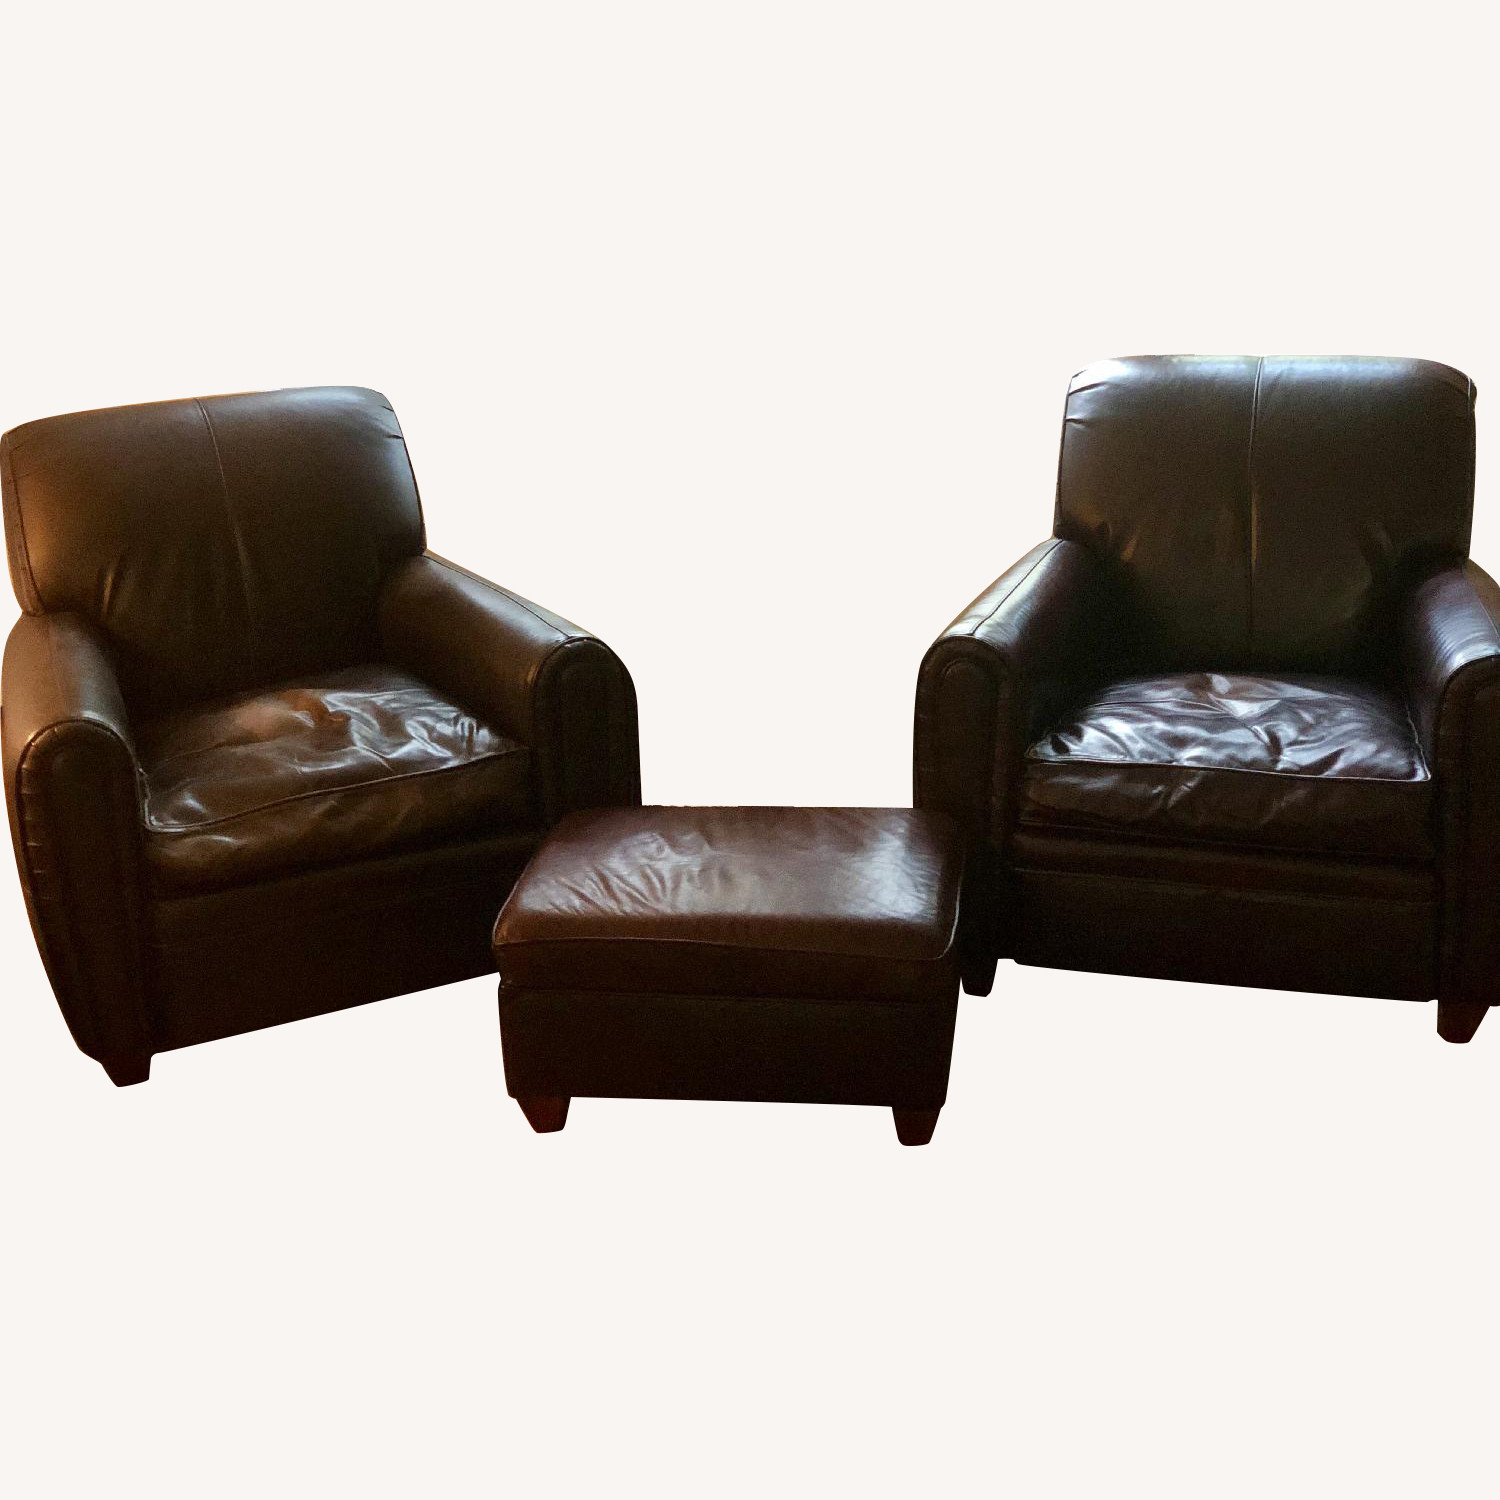 Vanguard Furniture Leather Chairs & Matching Ottoman